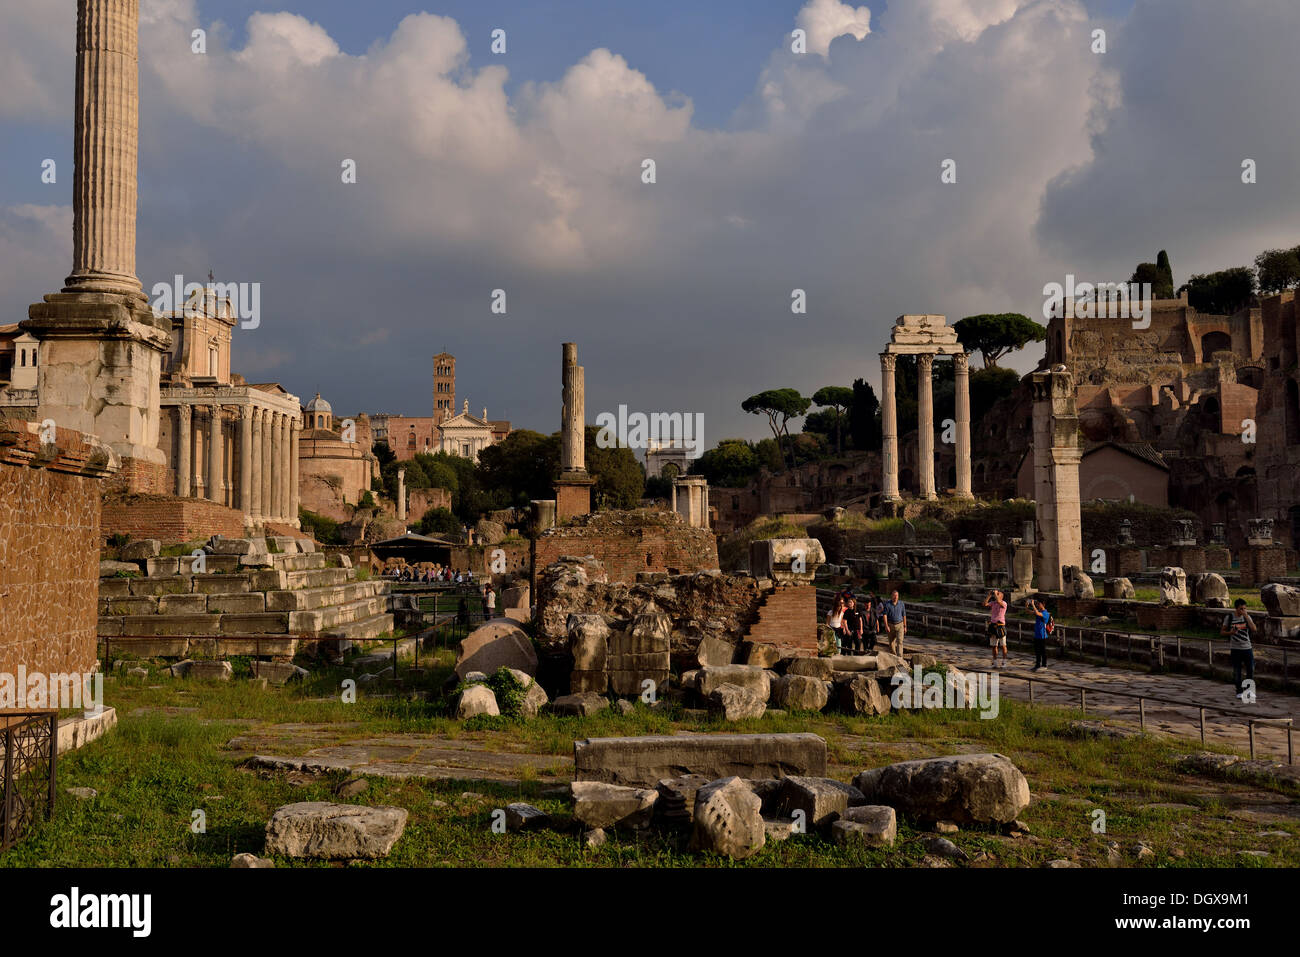 Ancient Rome located between the Palatine Hill and the Capitoline Hill of the city of Rome, Italy - Stock Image